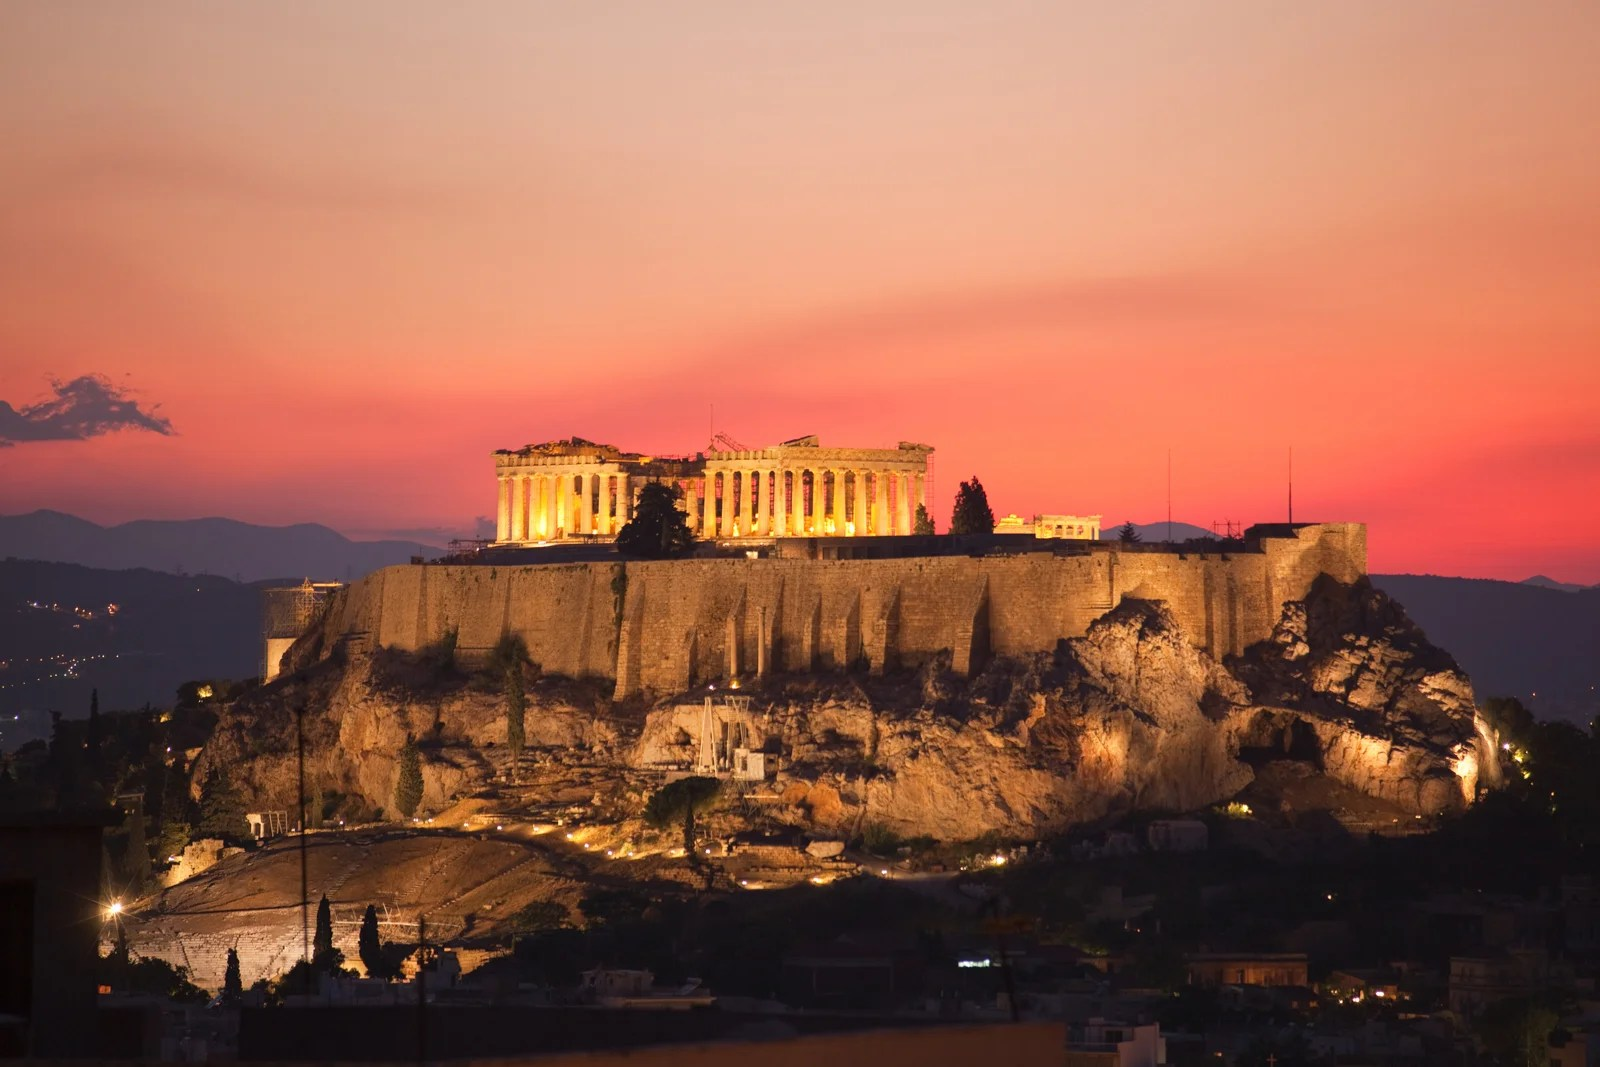 Cheap tickets to Greece: Flights to Athens have dropped to $299 R/T